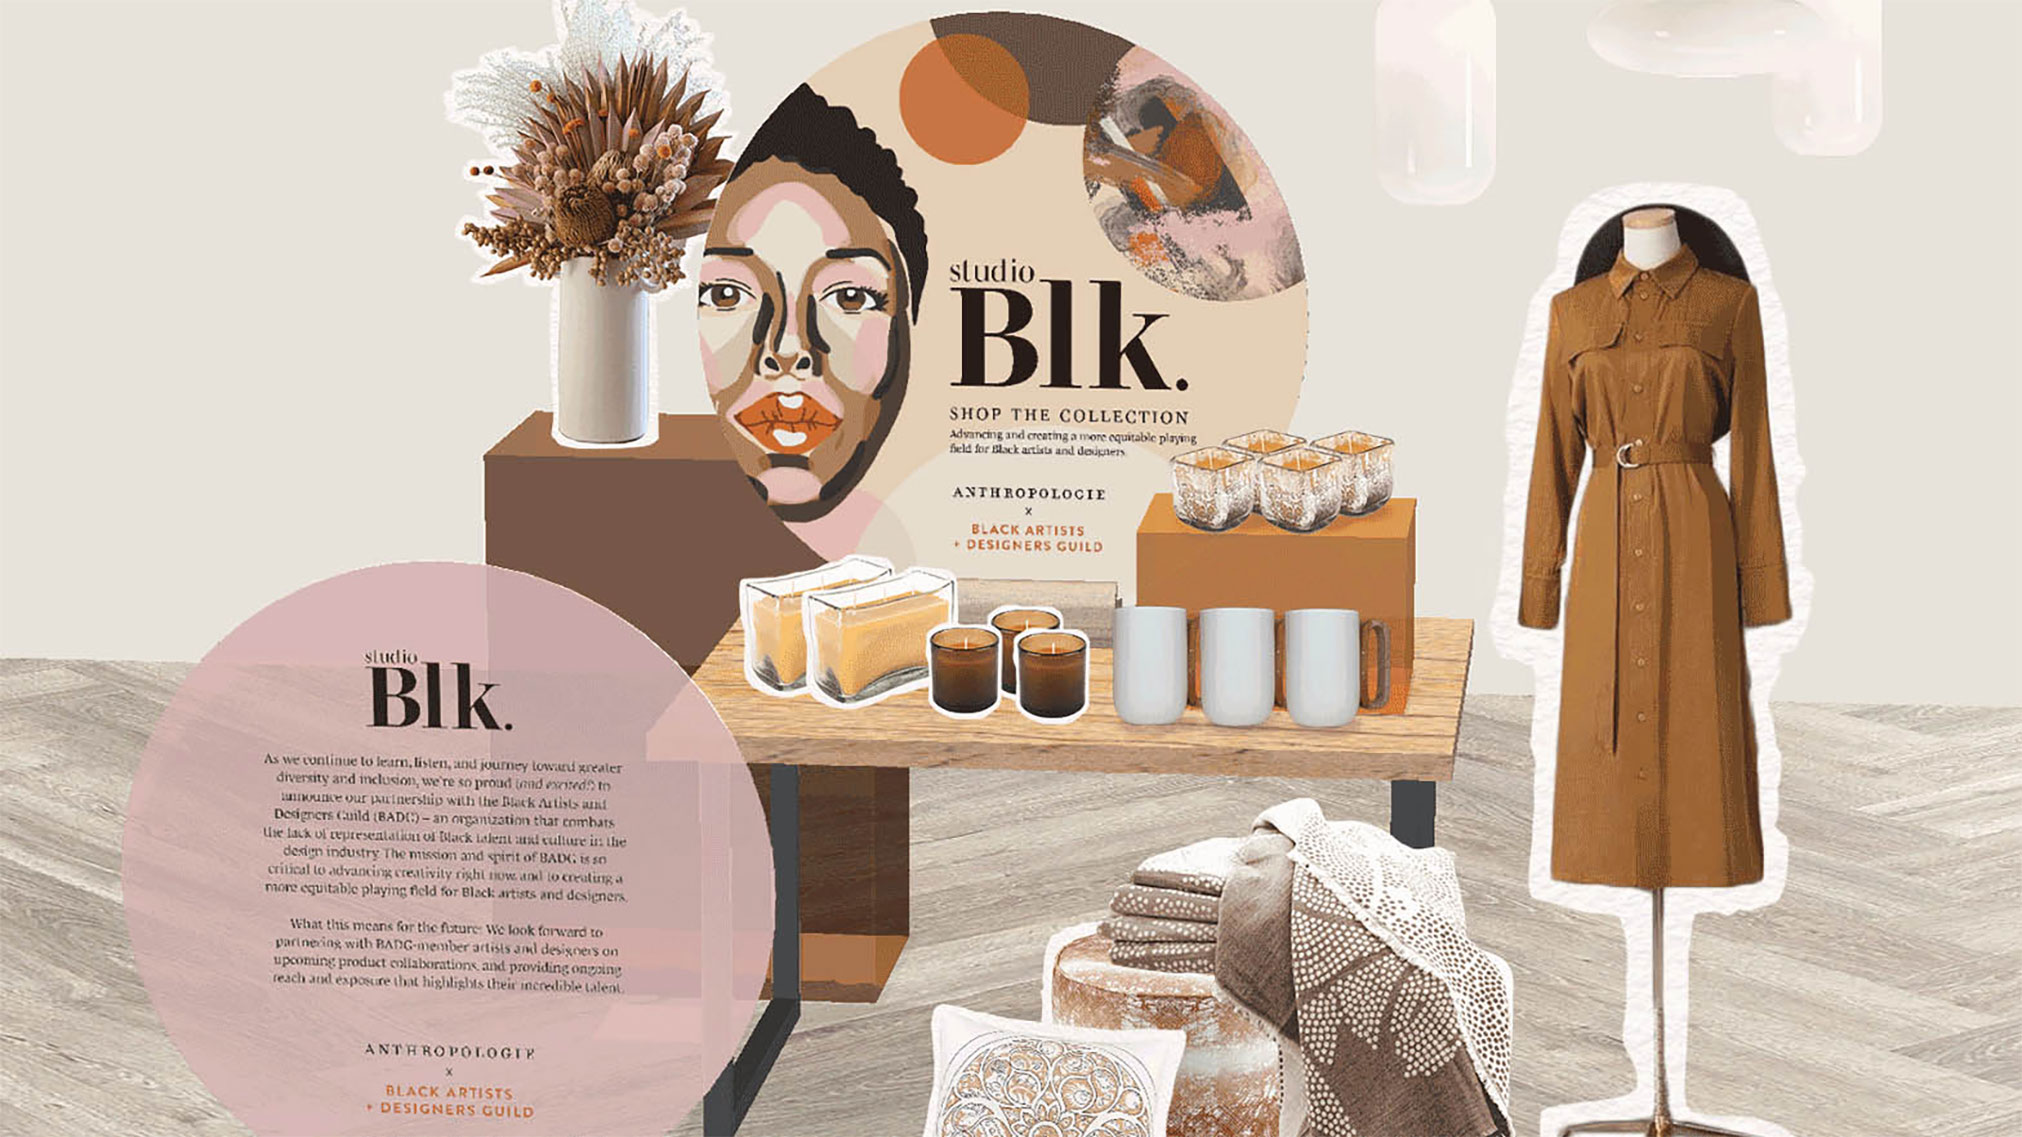 A visual display design system including logo design, illustrations, display signage, and store mockups for a retail collaboration to bring awareness to the Black Artists and Designers Guild.